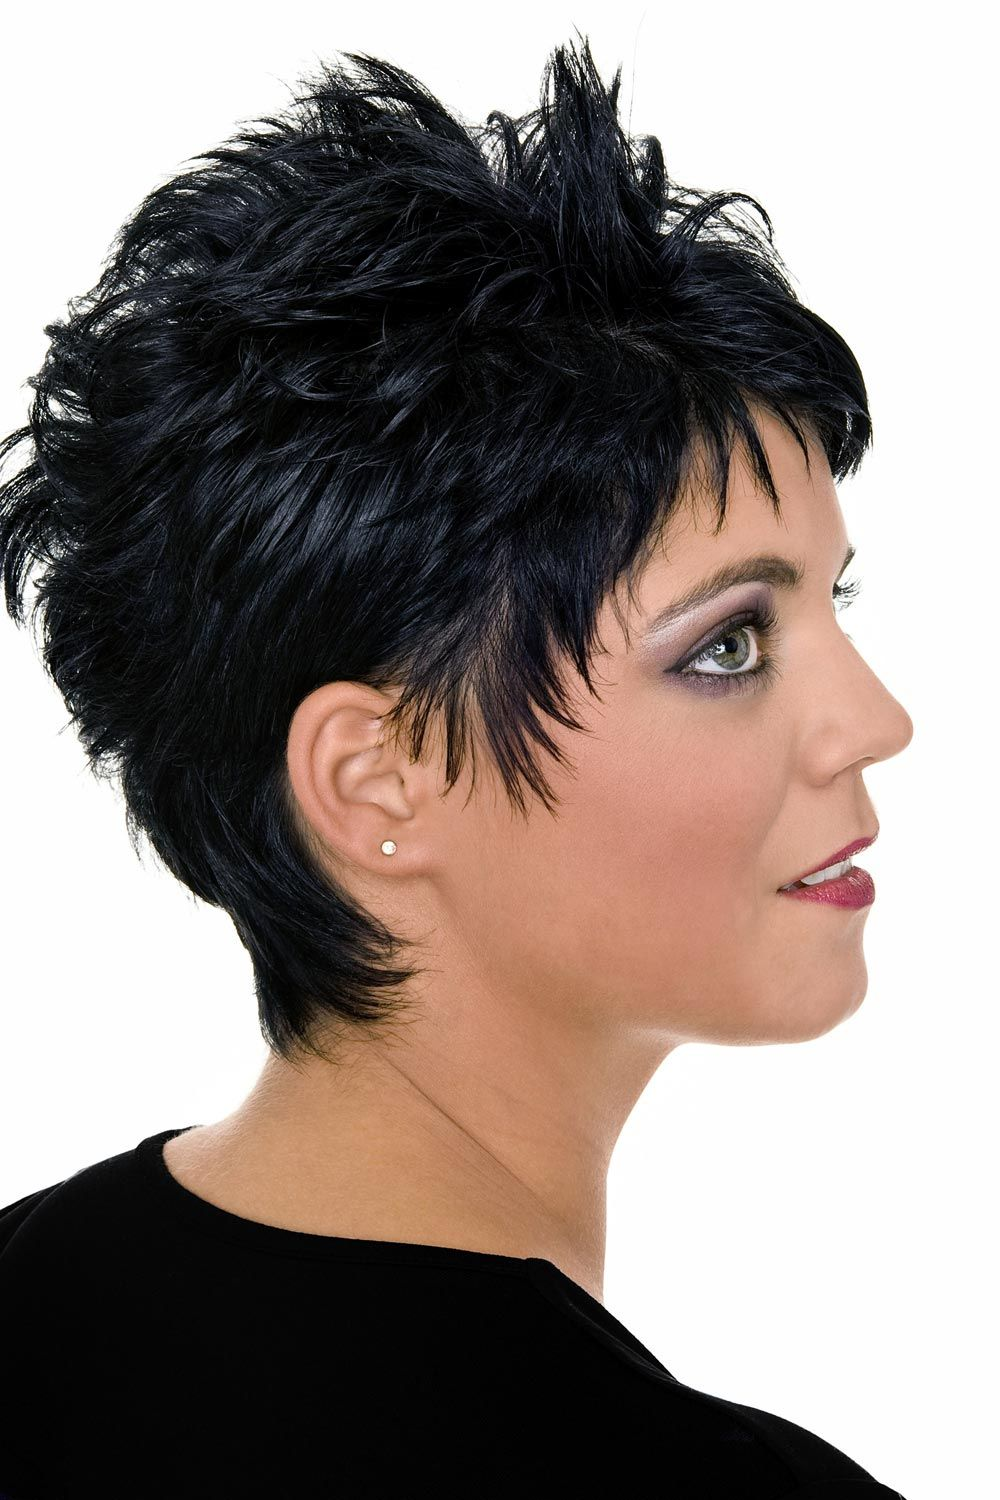 Schicker Pixie Cut | Short and sassy hair styles I love ...